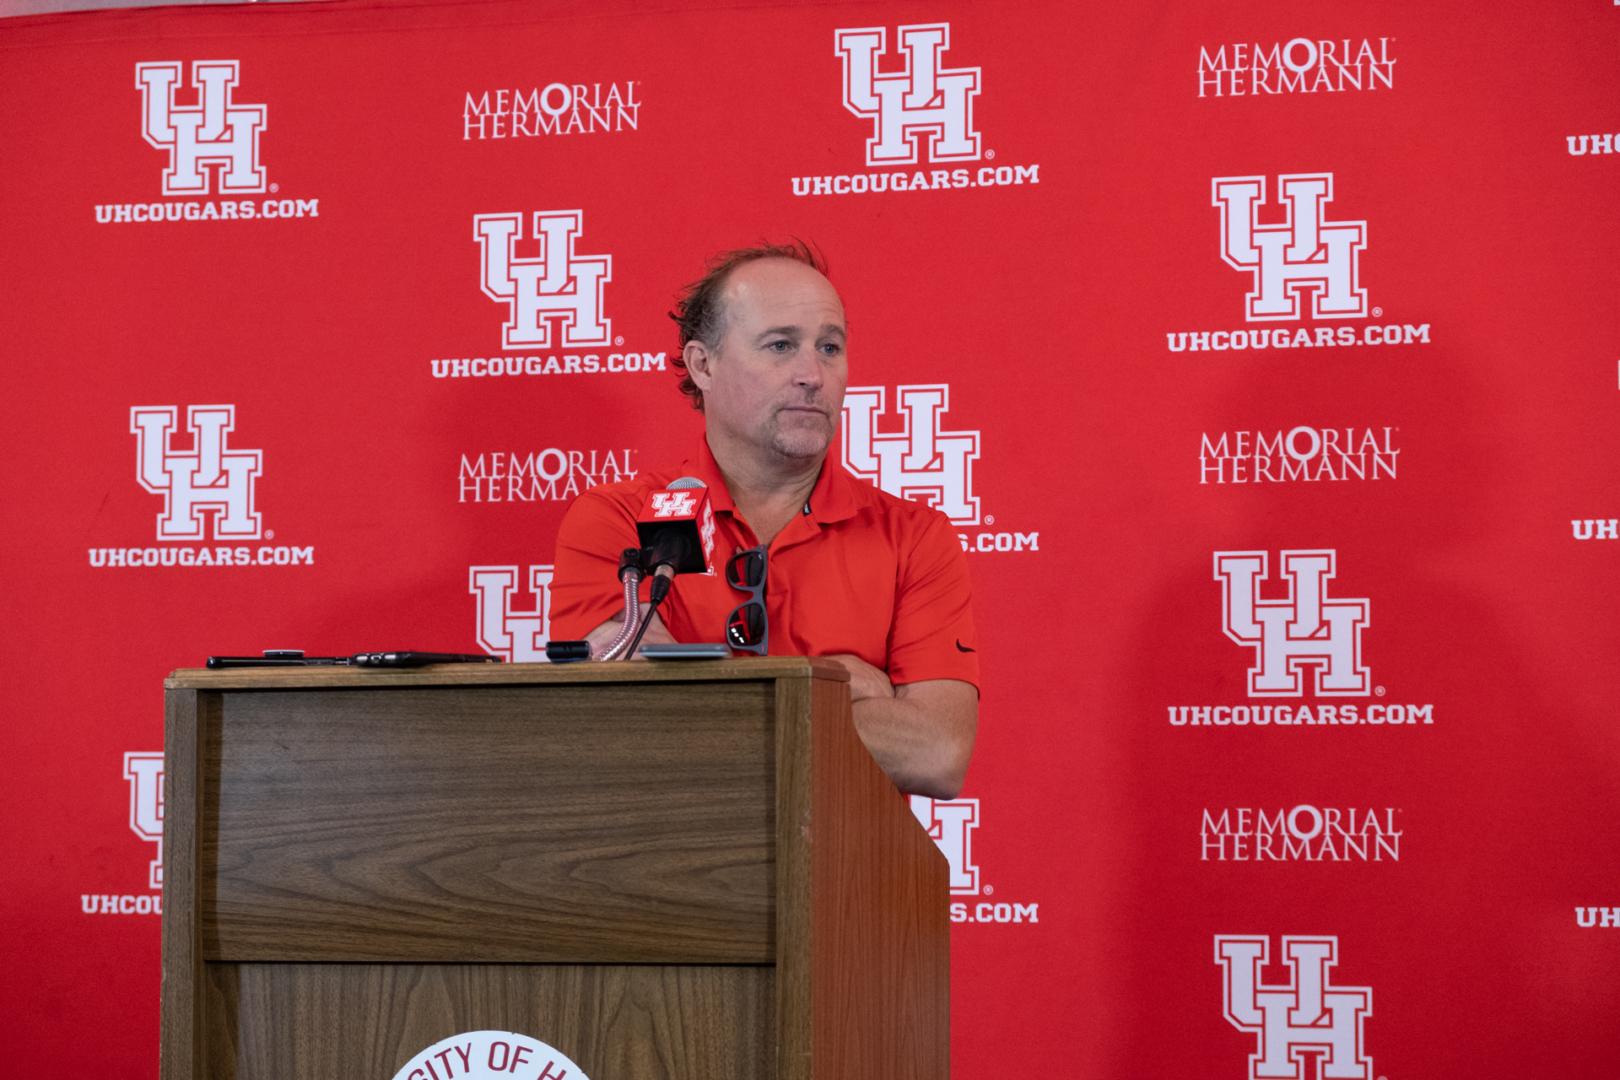 Despite a 2019 losing season, head football coach Dana Holgorsen looks optimistically forward to the upcoming 2020 season. The 3-7 losing 2019 record is the Cougars' worst since 2012. | Kathryn Lenihan/The Cougar